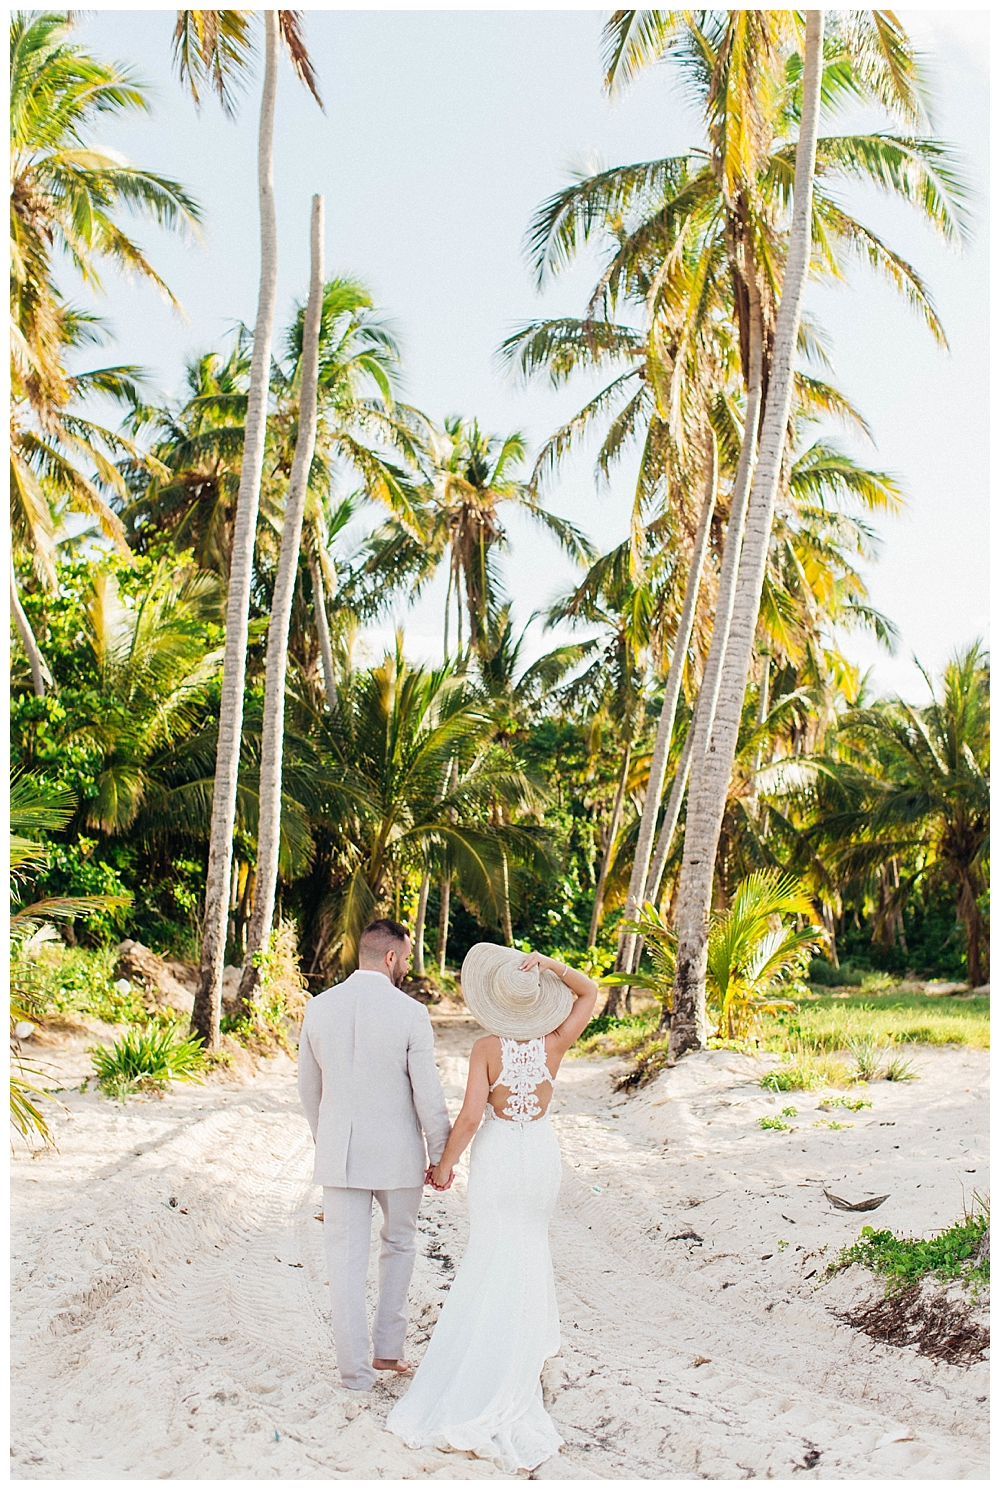 christinakarstphotography_dominicanrepublicwedding-208.jpg